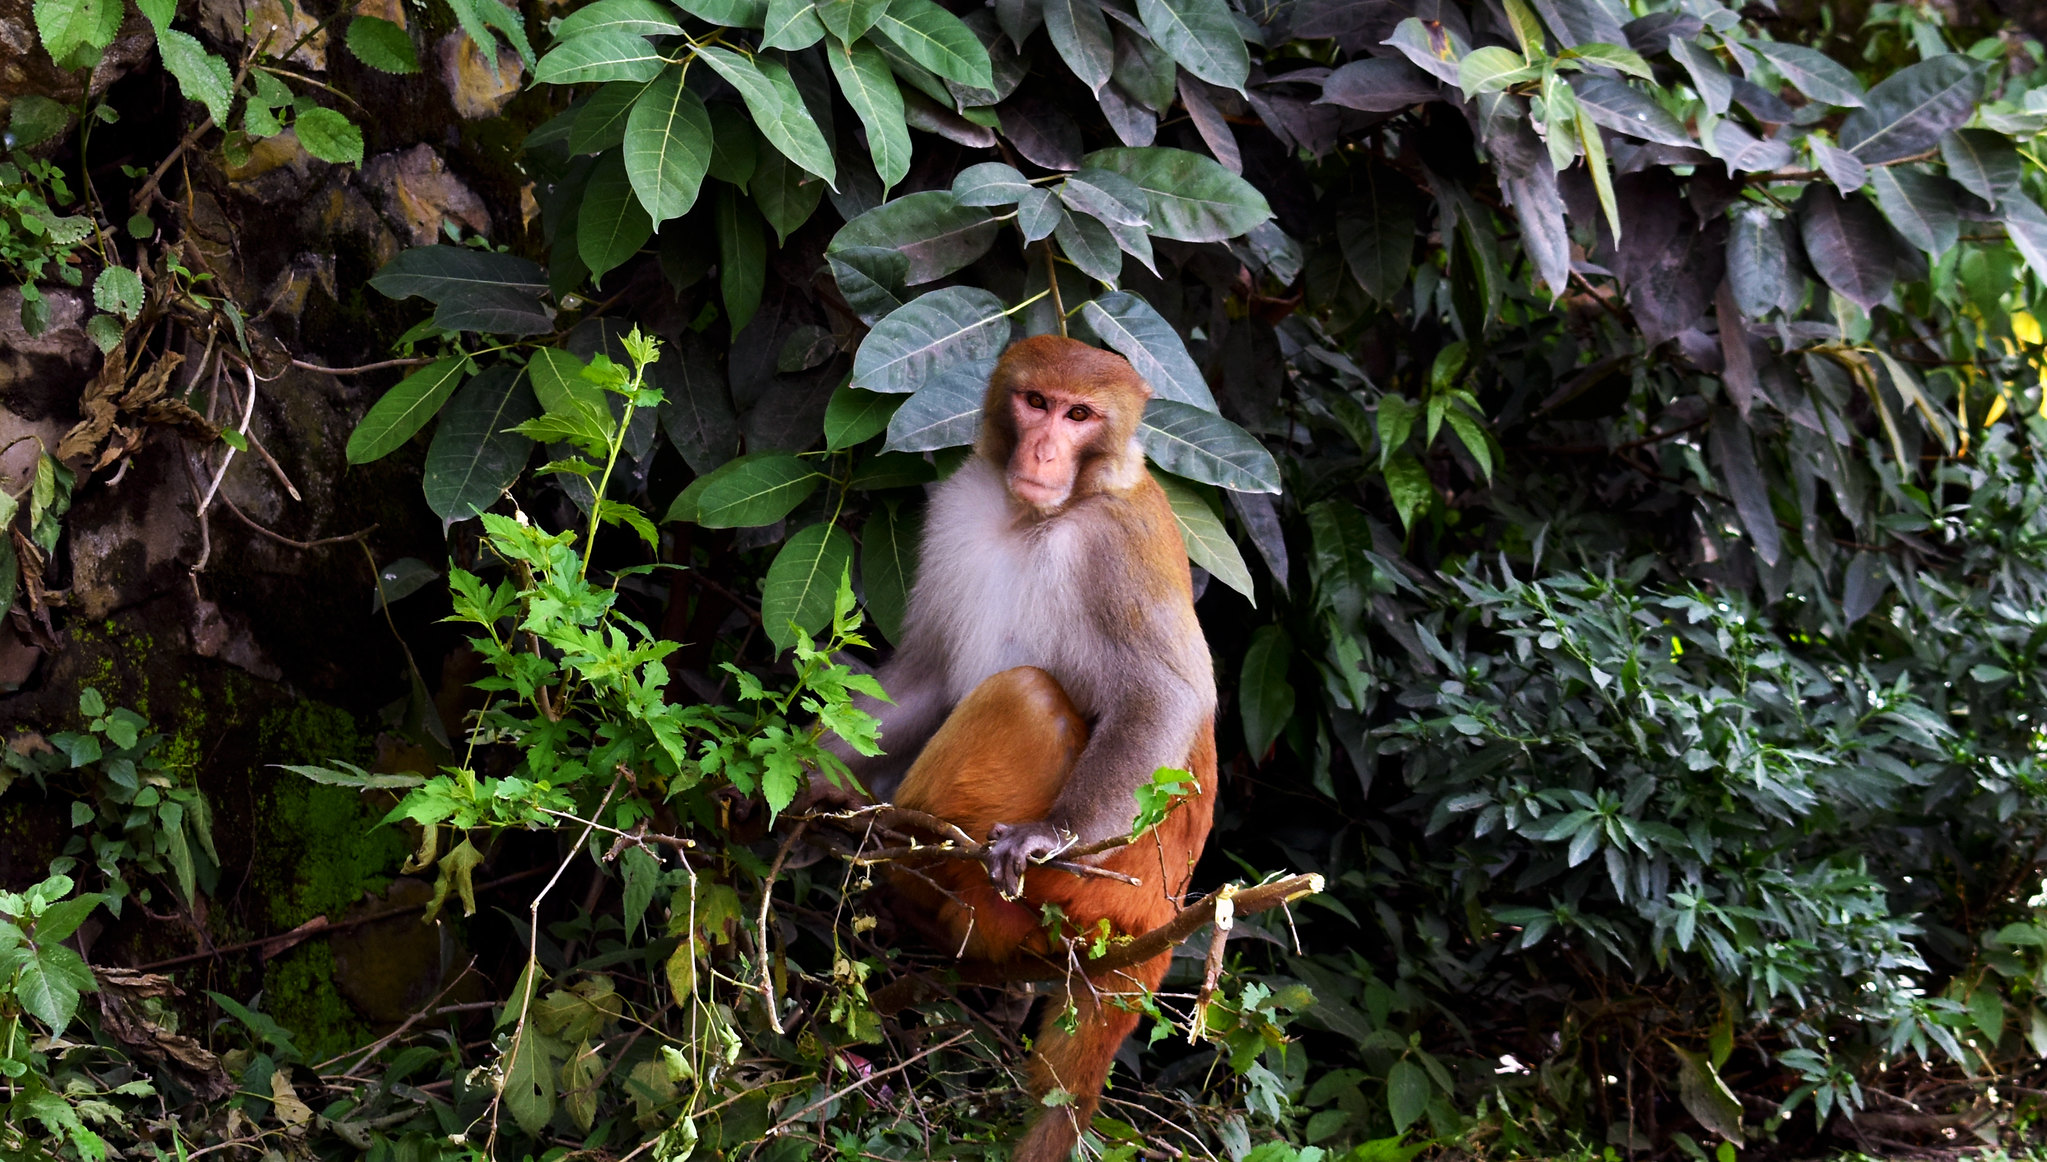 A monkey at Swayambhunath Temple, Kathmandu. Photo: Stig Berge/Flickr